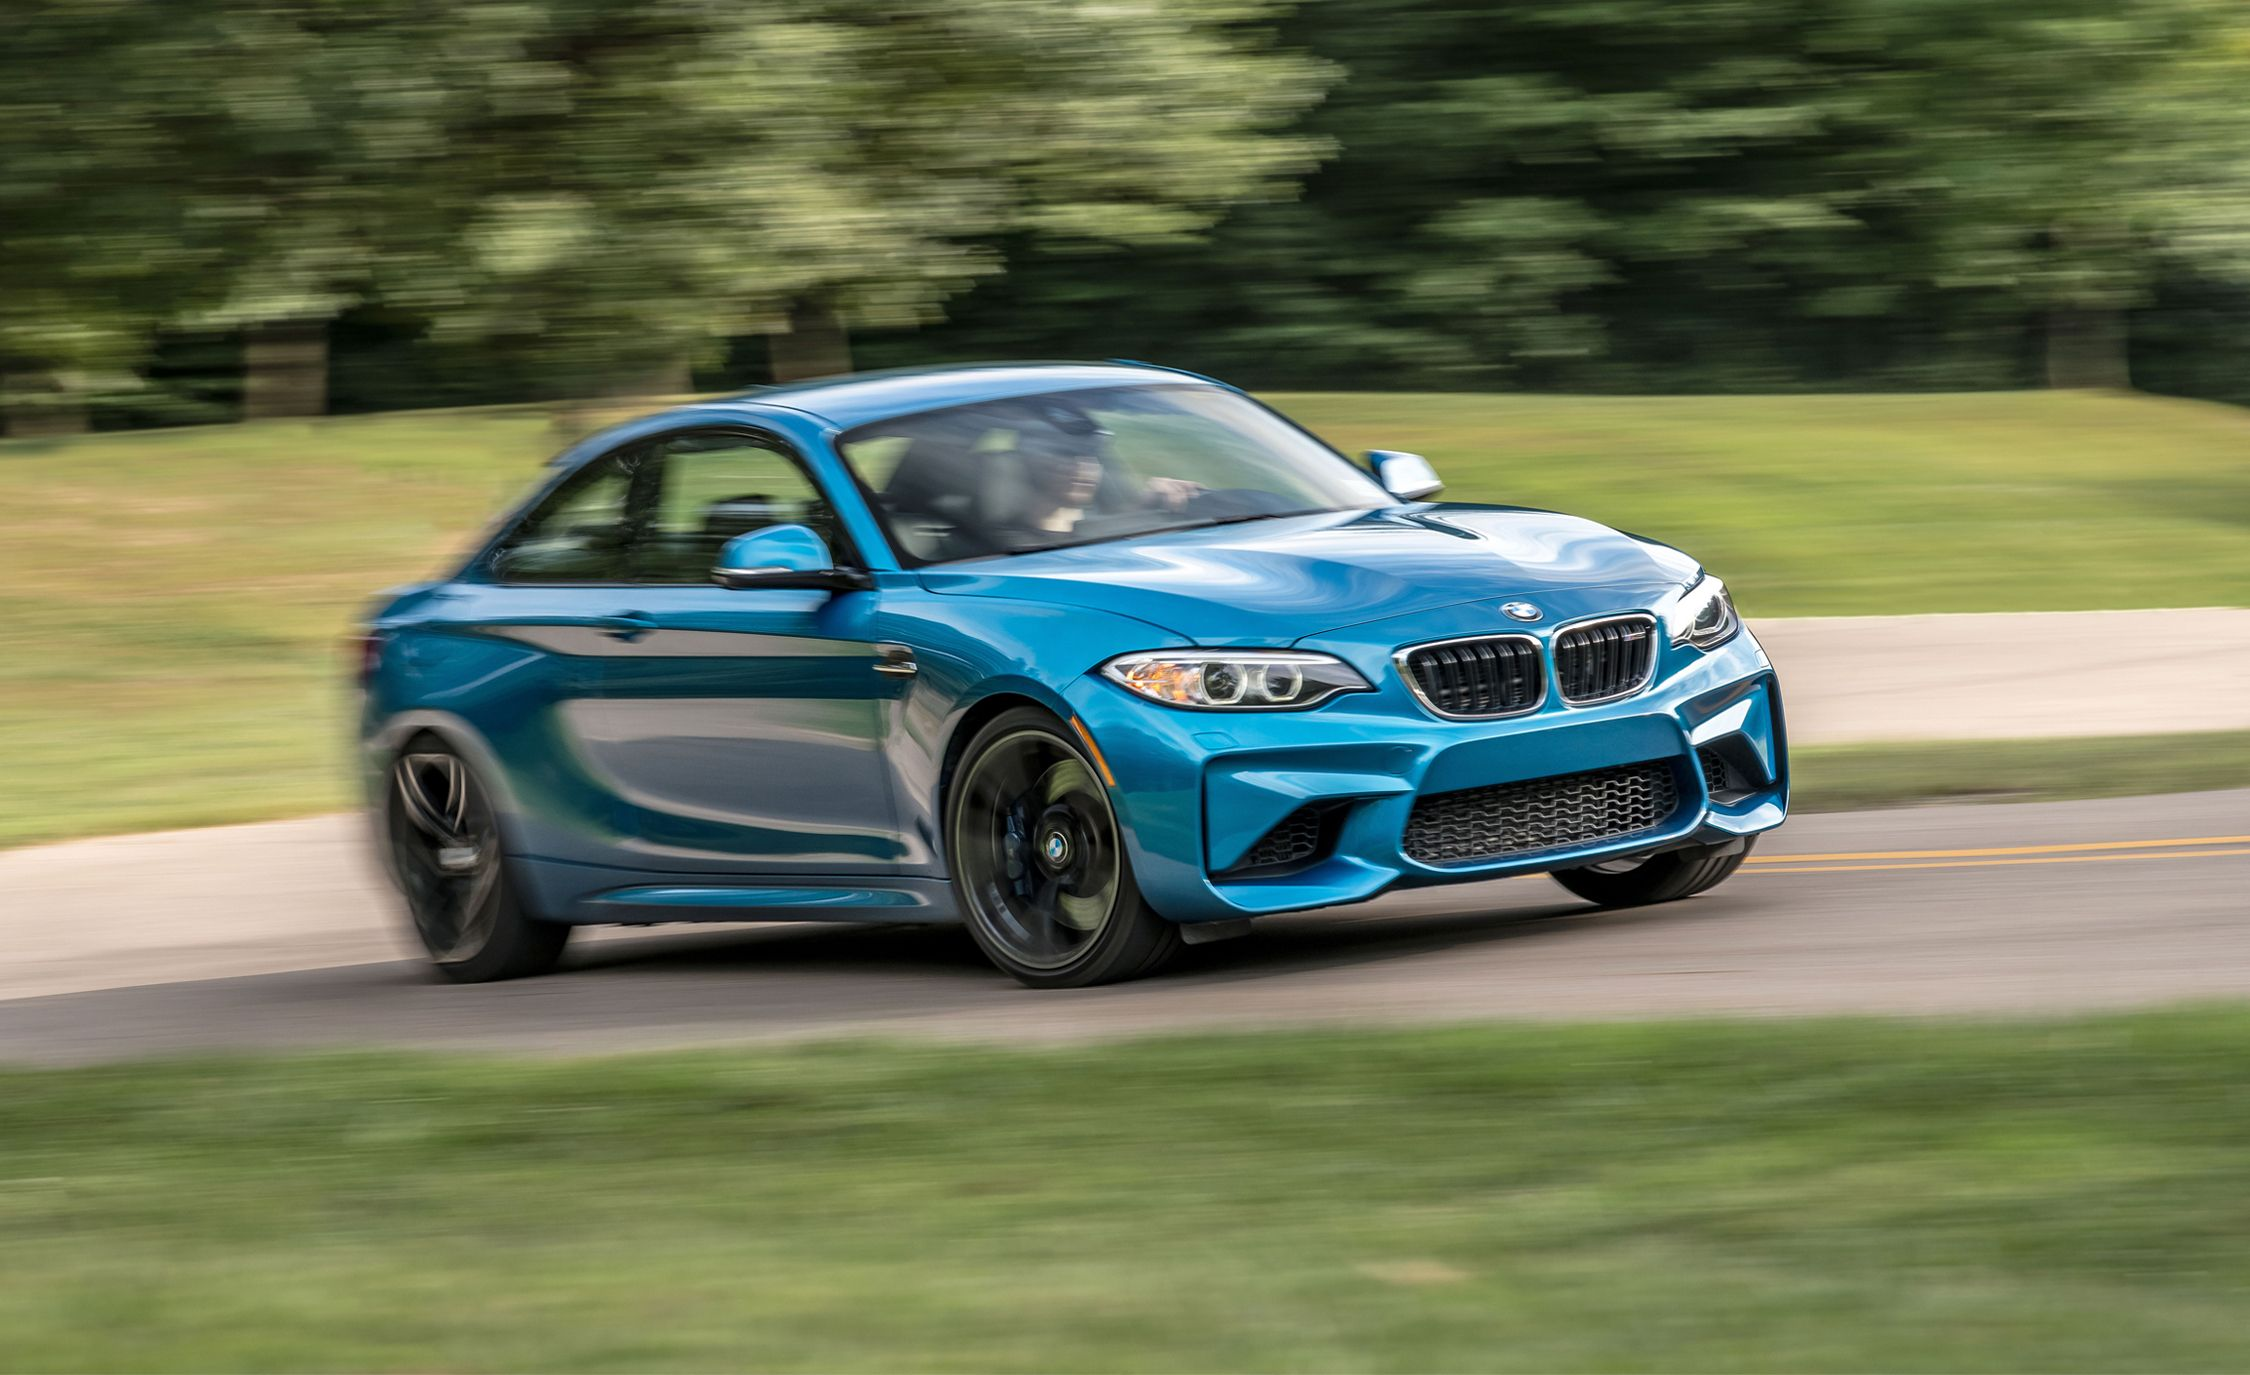 Our 2017 Bmw M2 Finishes 40 000 Miles With Mixed Opinions